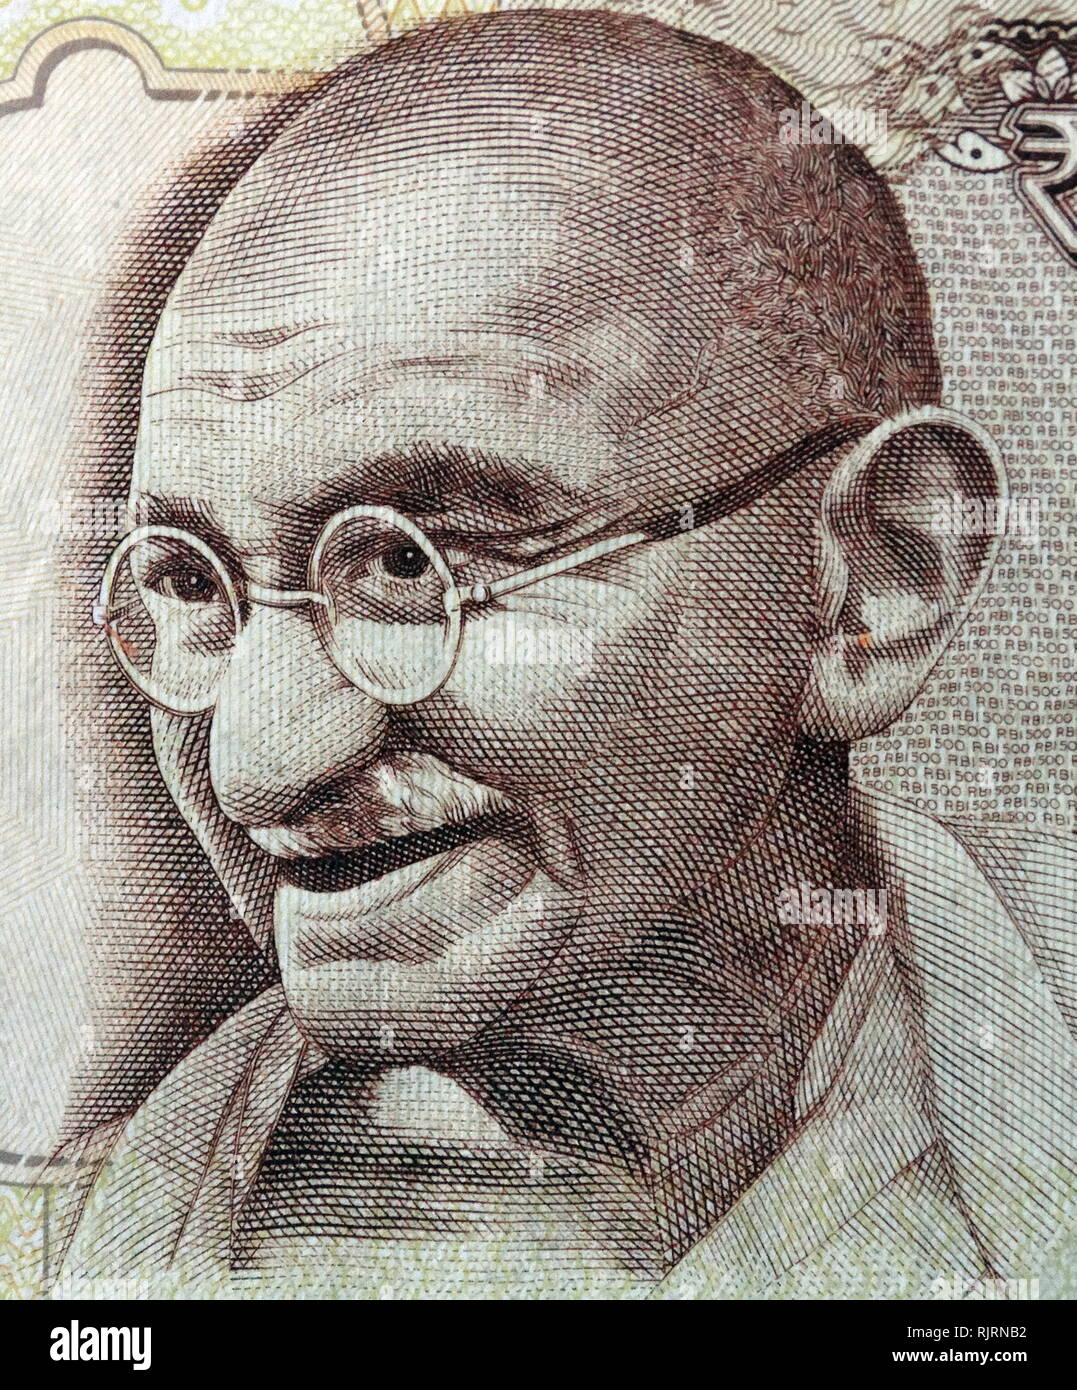 Gandhi depicted on the 500 Rupee banknote, used in India, between October 1997 and November 2016. Mohandas Karamchand Gandhi (1869 - 1948), was an Indian activist who was the leader of the Indian independence movement against British rule. - Stock Image